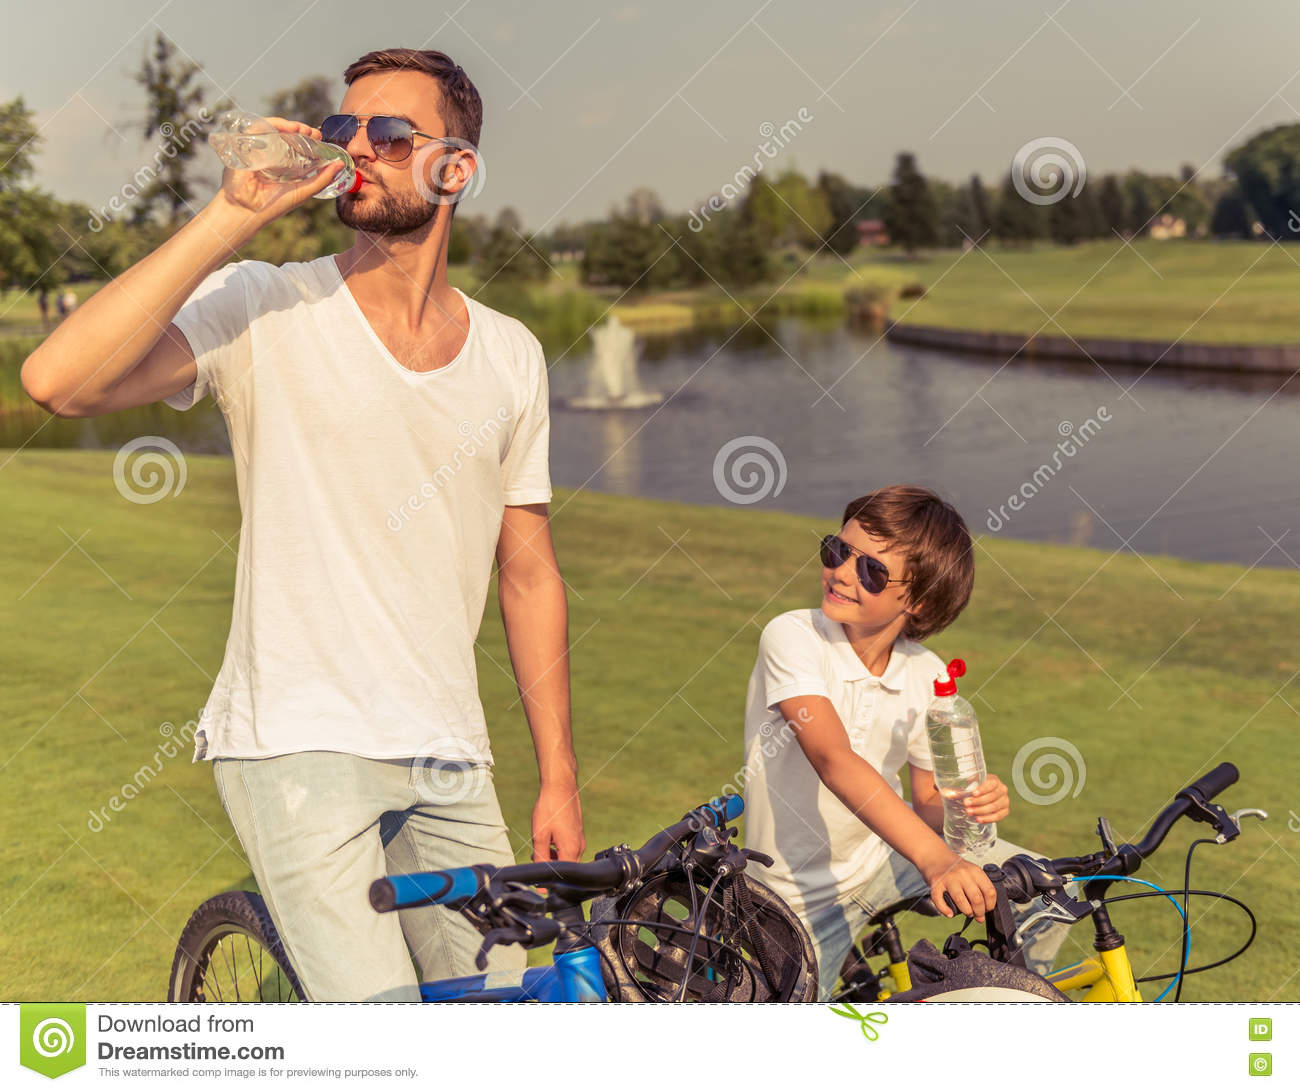 Cycling Drinking Glasses